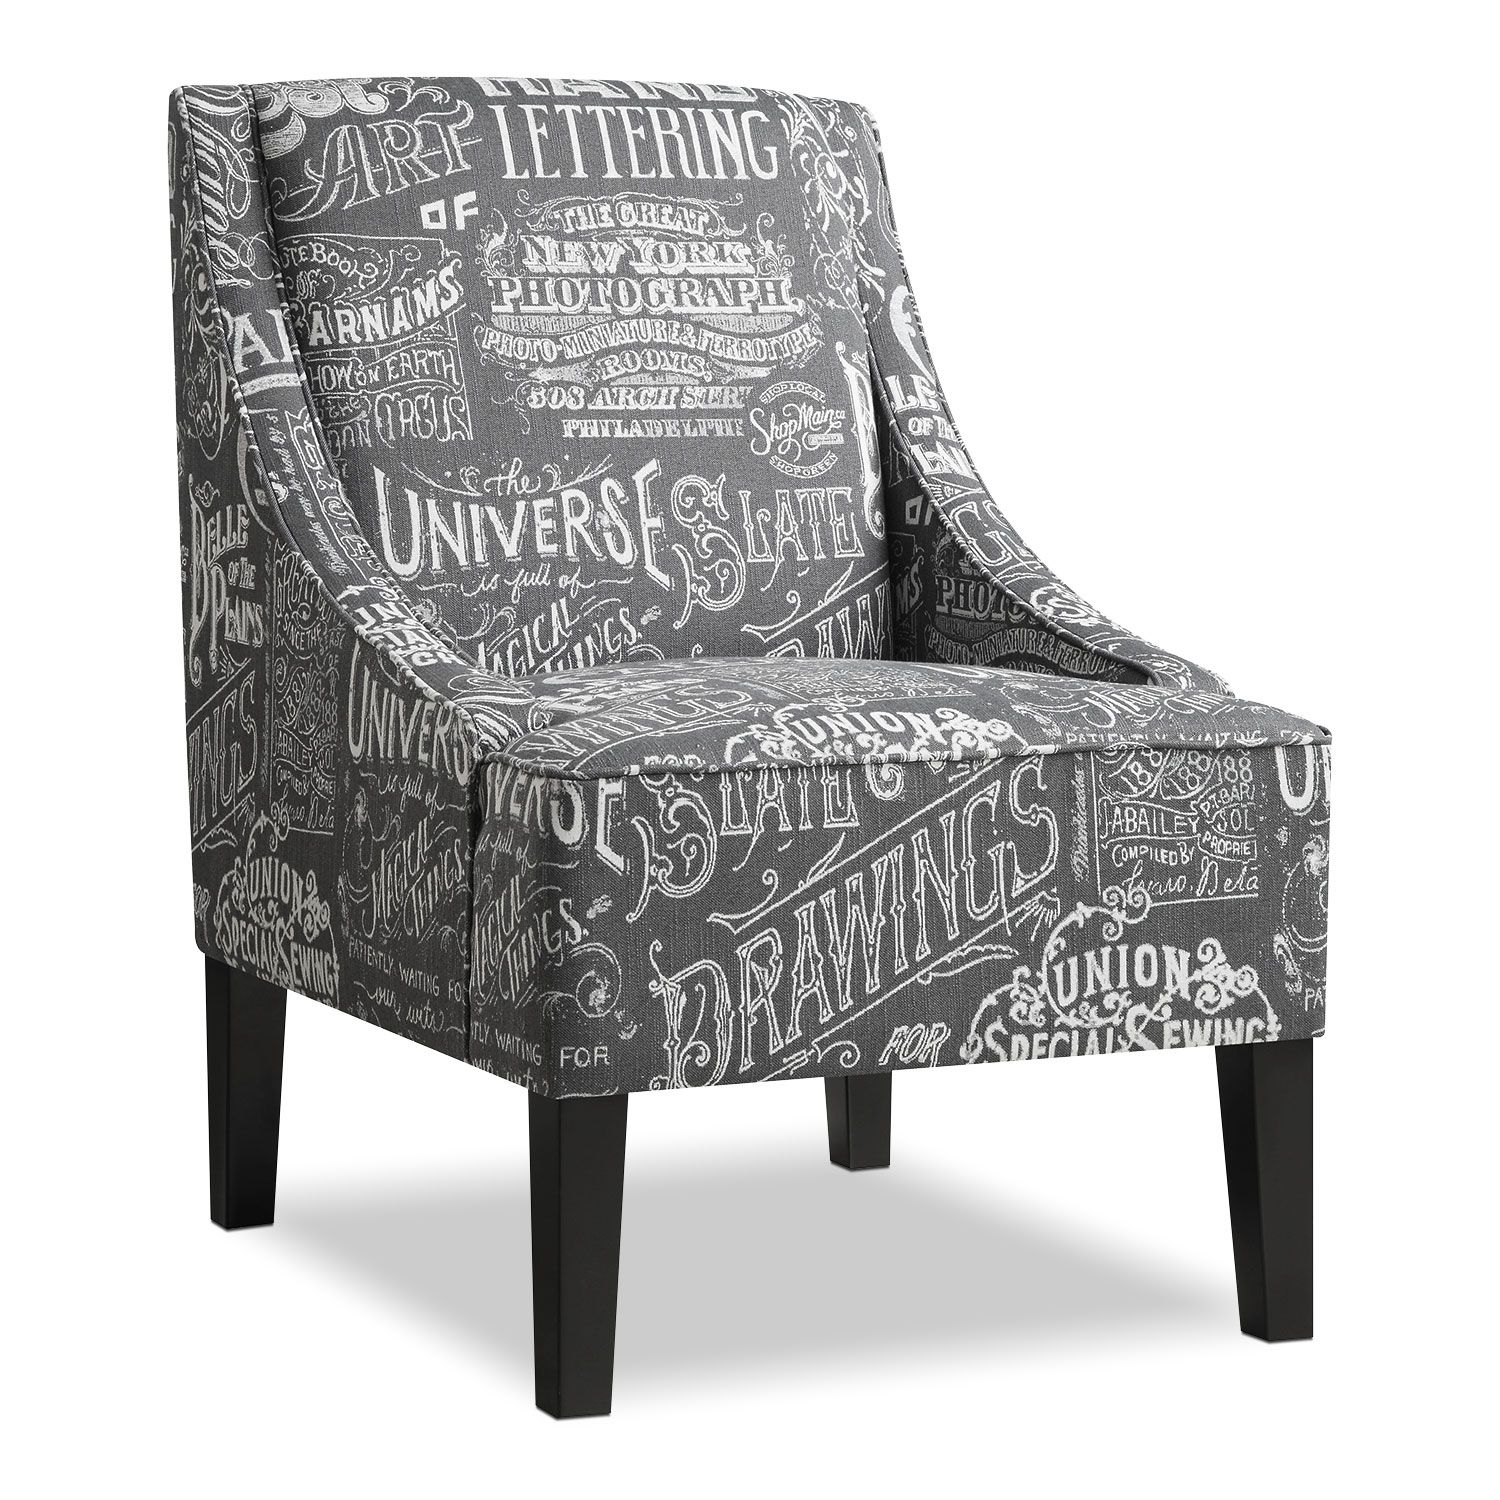 Delightful Chalk It Up. The Gray Hue And Chalkboard Style Of The Carter Chair Make It